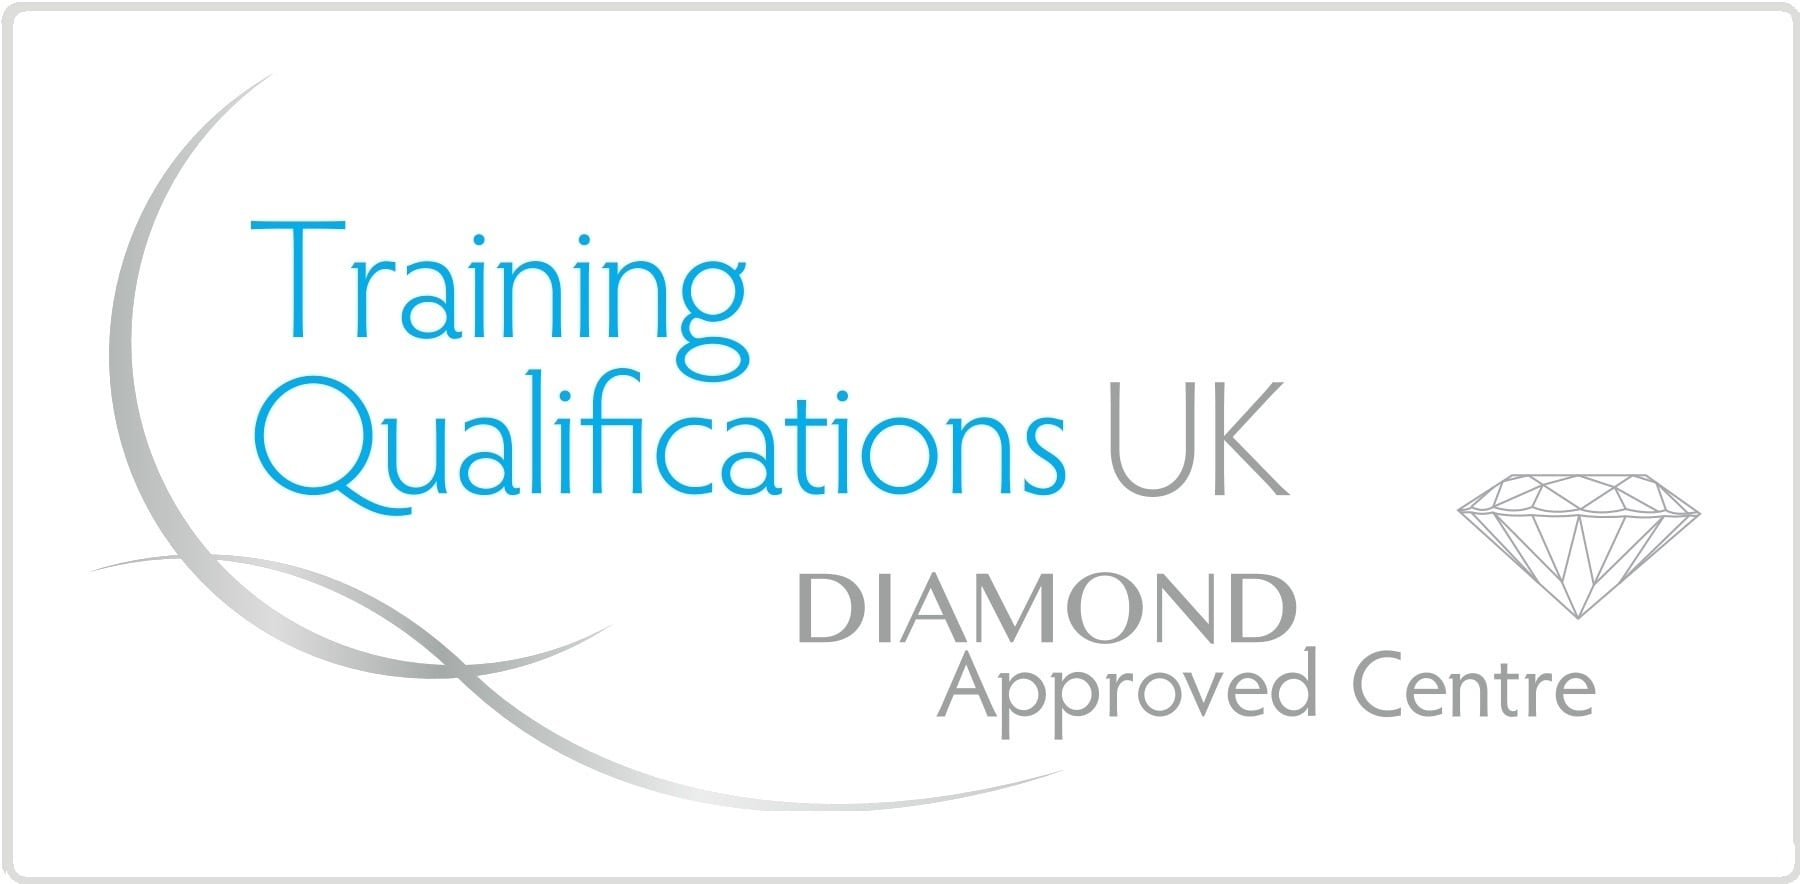 TQUK Diamond Approved Centre